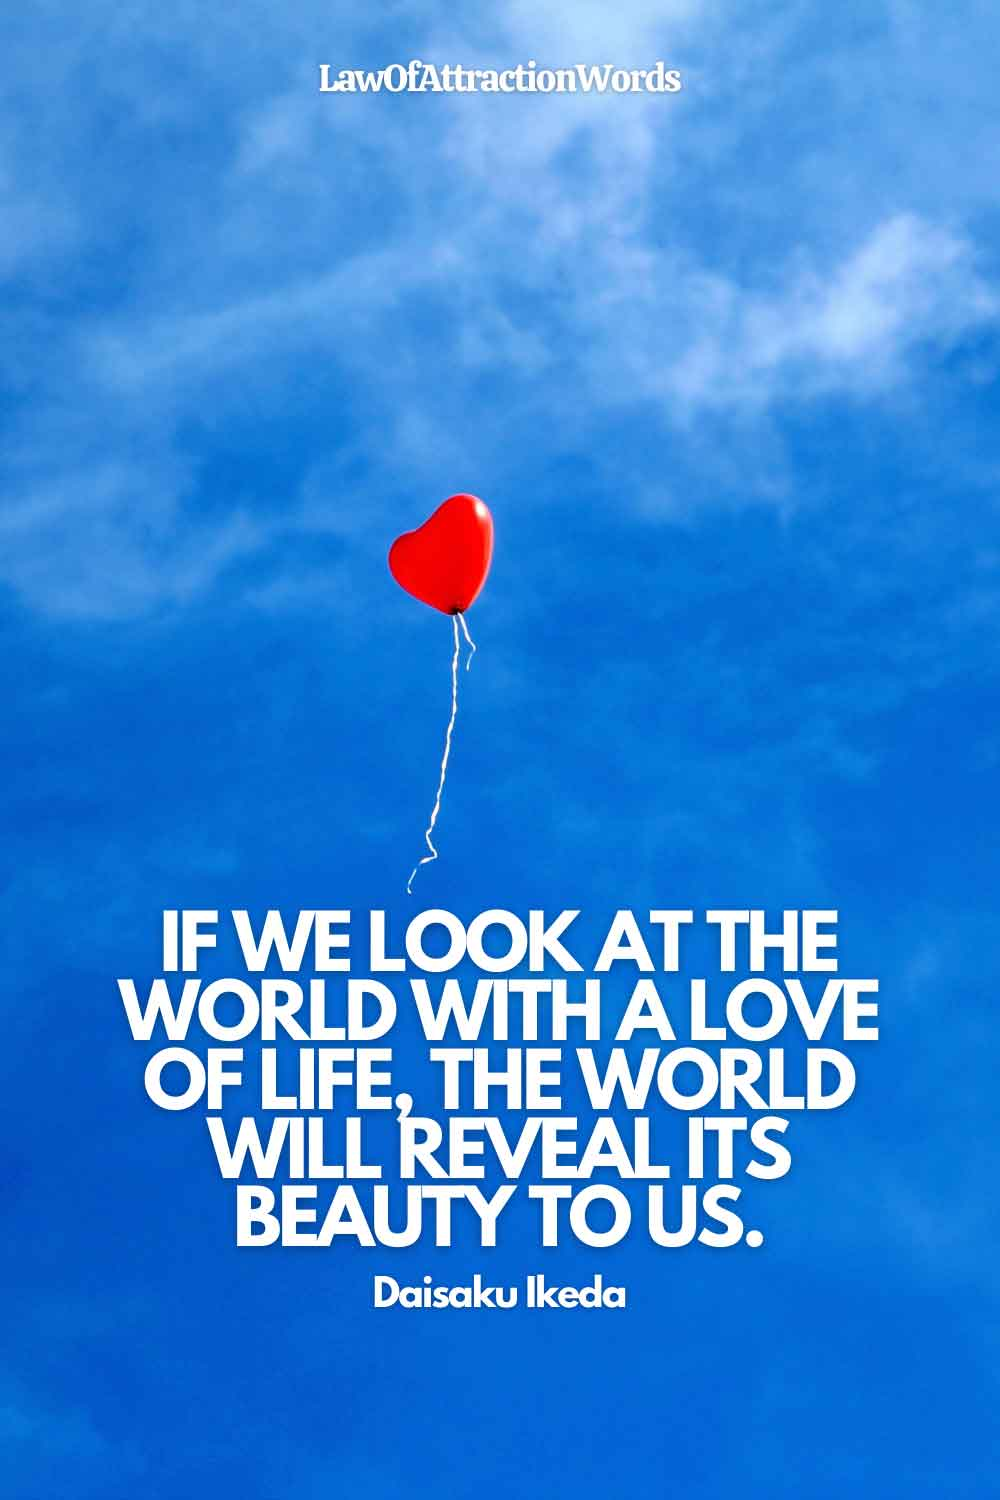 Law Of Attraction Quotes About Love Of Life